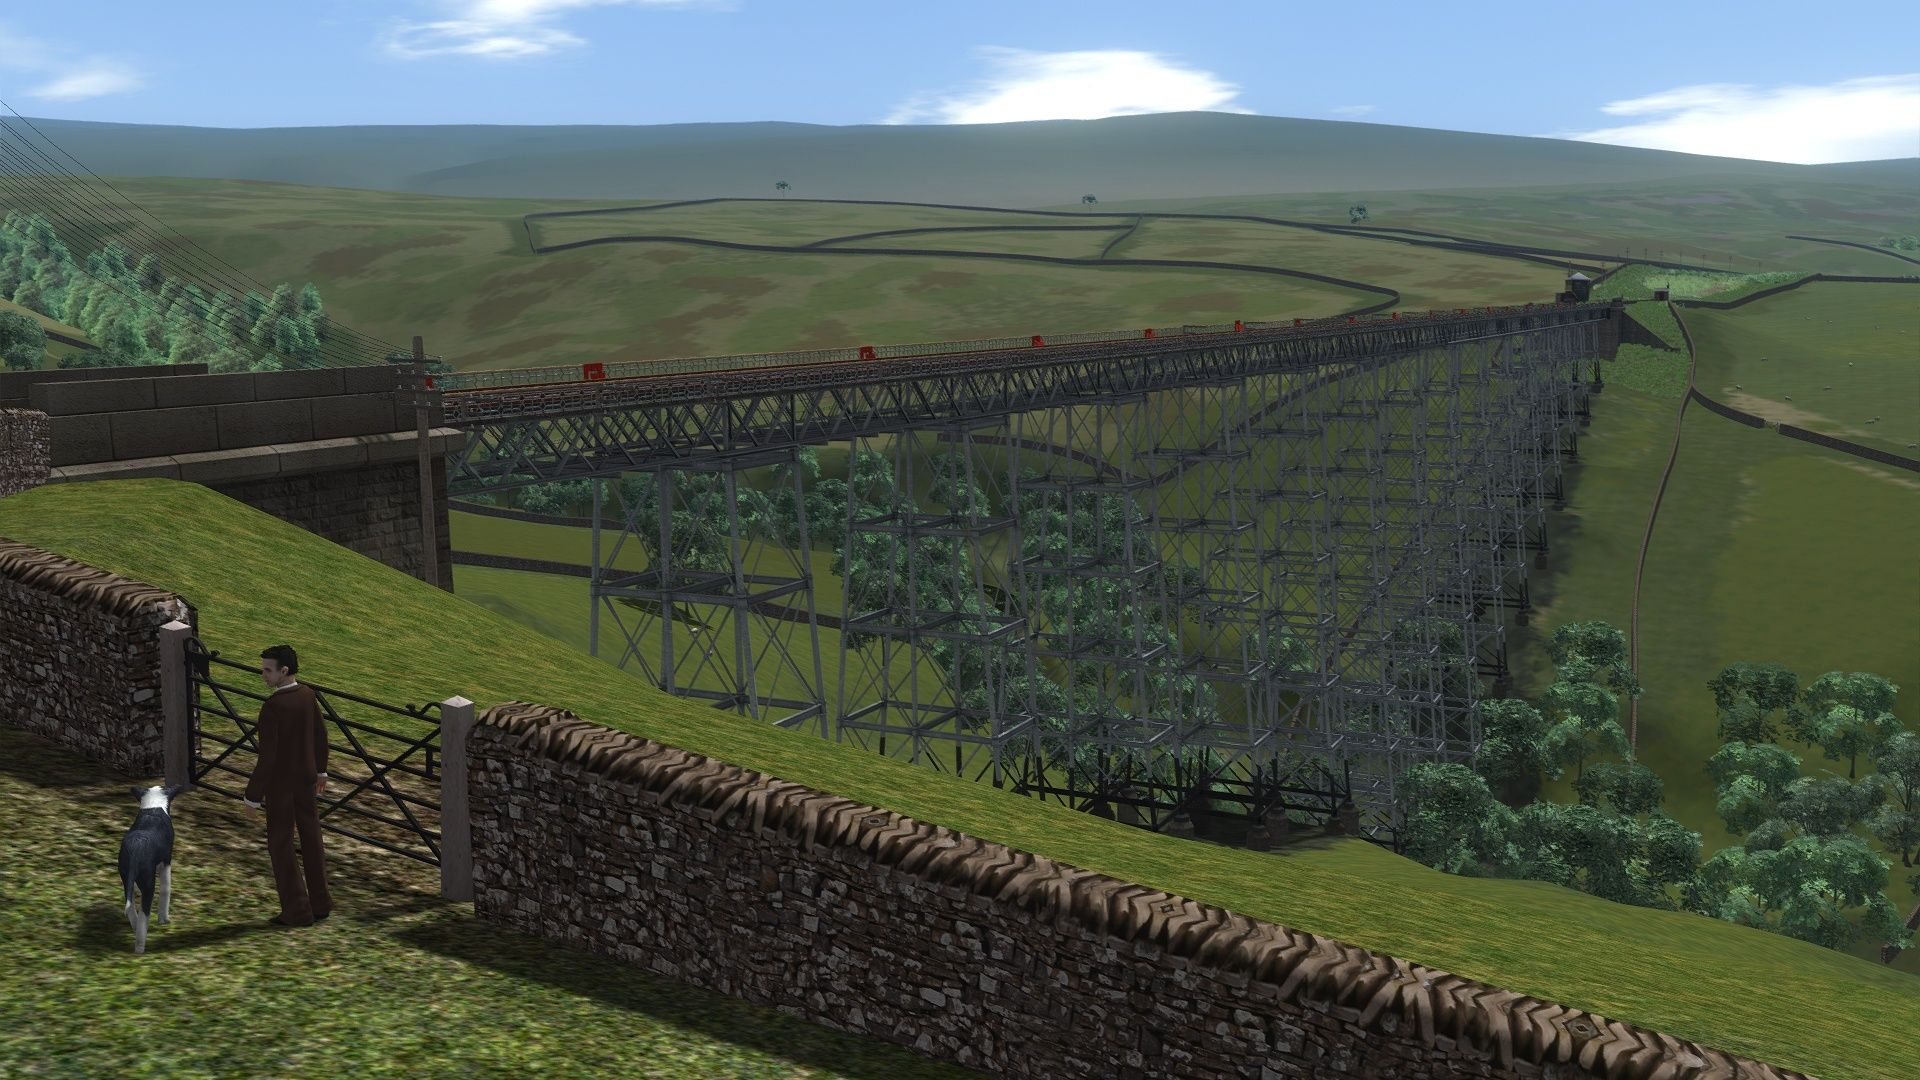 Screenshot_Stainmore, Shap and the Eden Valley_54.49060--2.24820_15-13-23